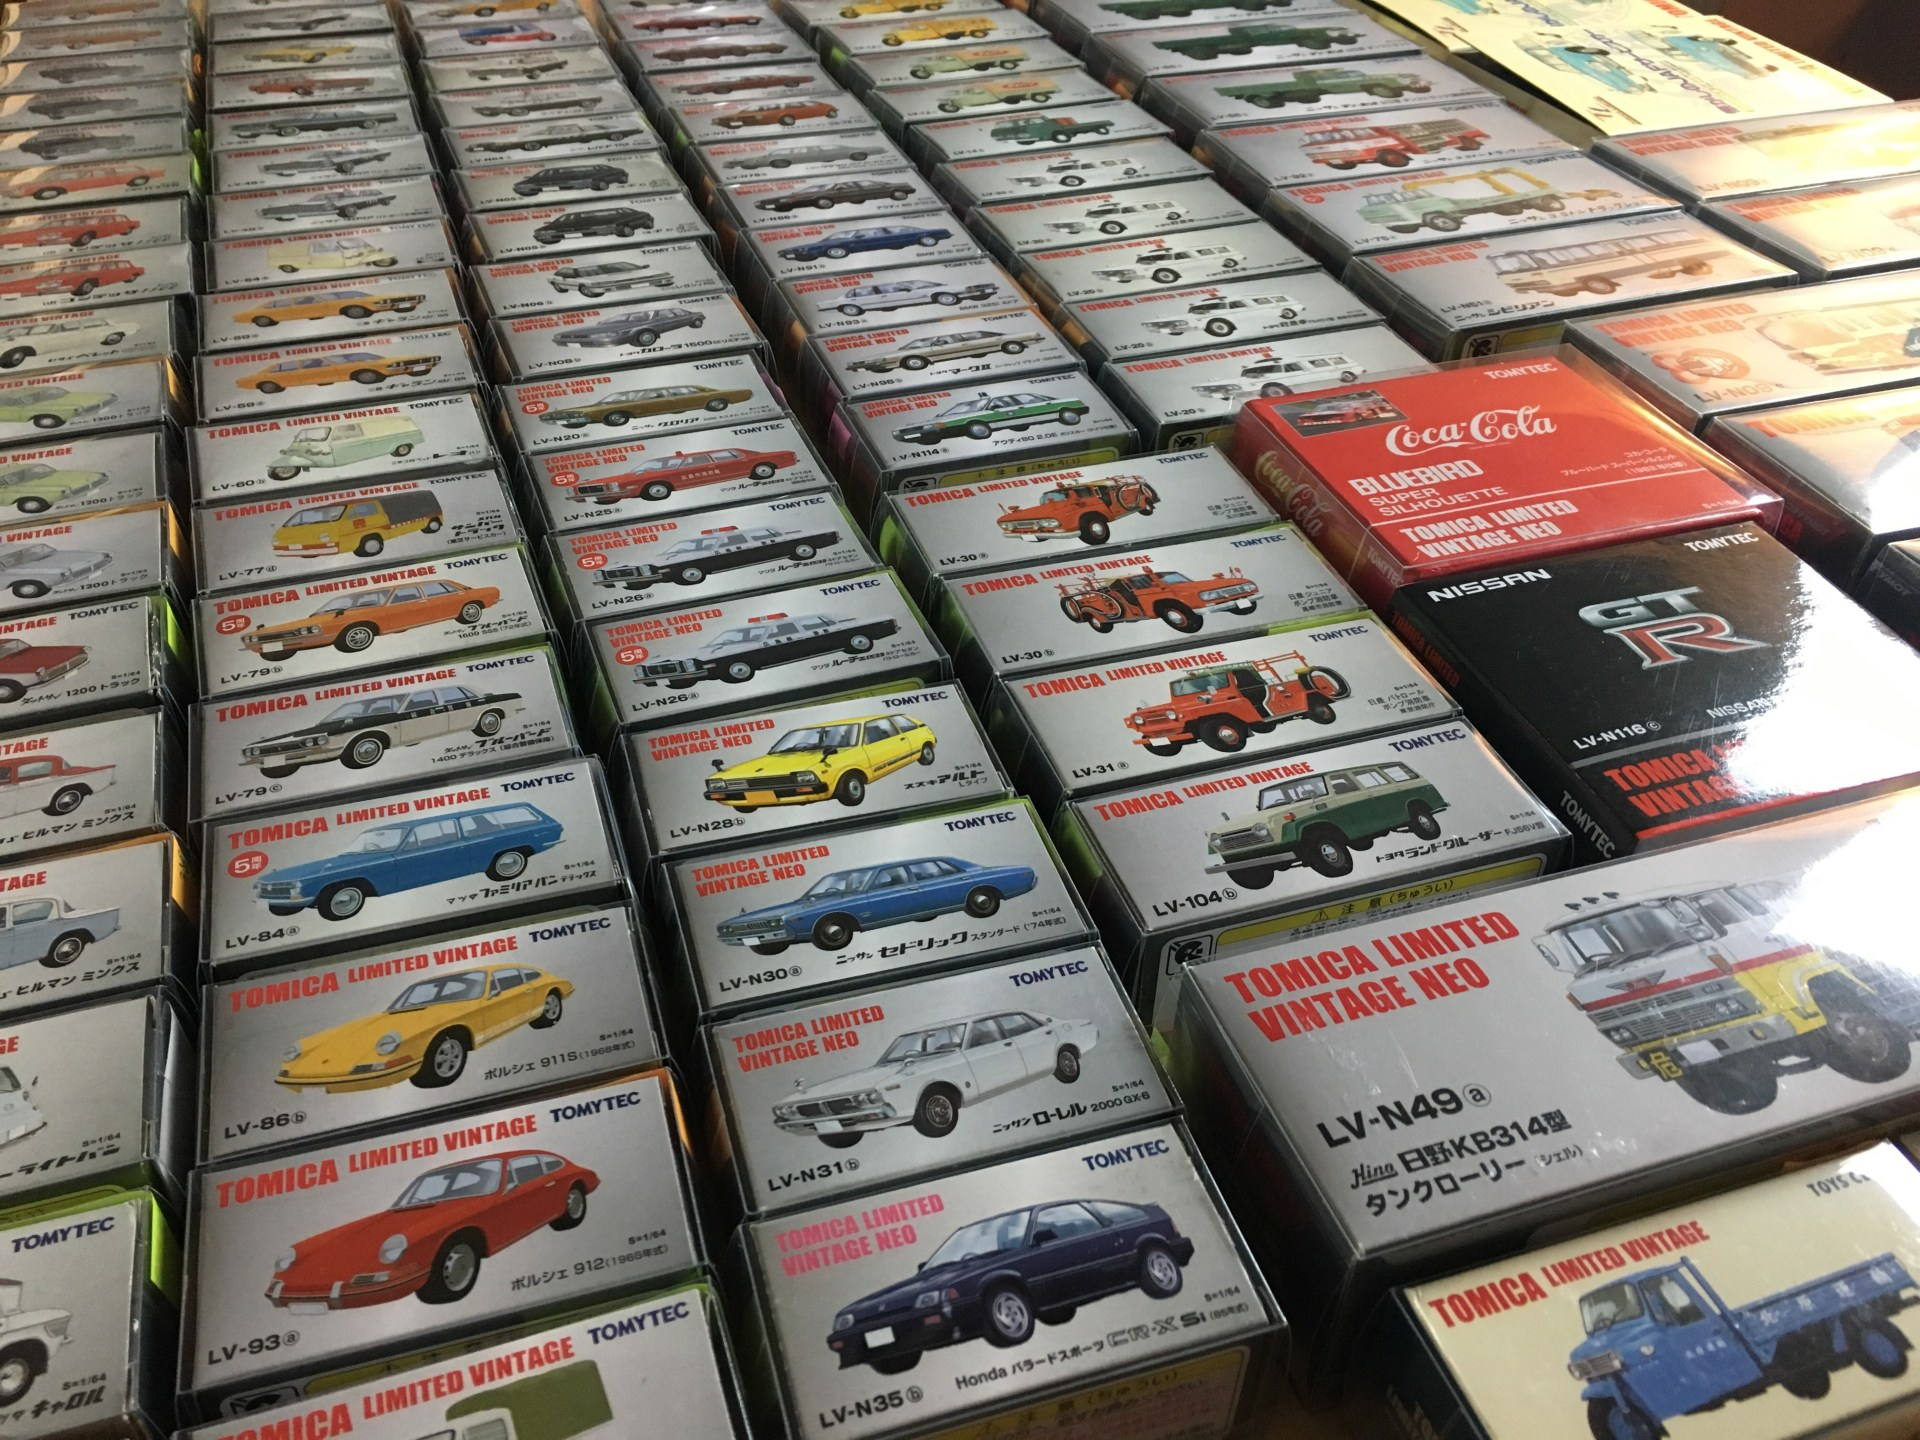 The Best Diecast Sale Of The Year The Tomica Limited Vintage Damaged Box Sale At Japan Booster Begins Tonight Thelamleygroup